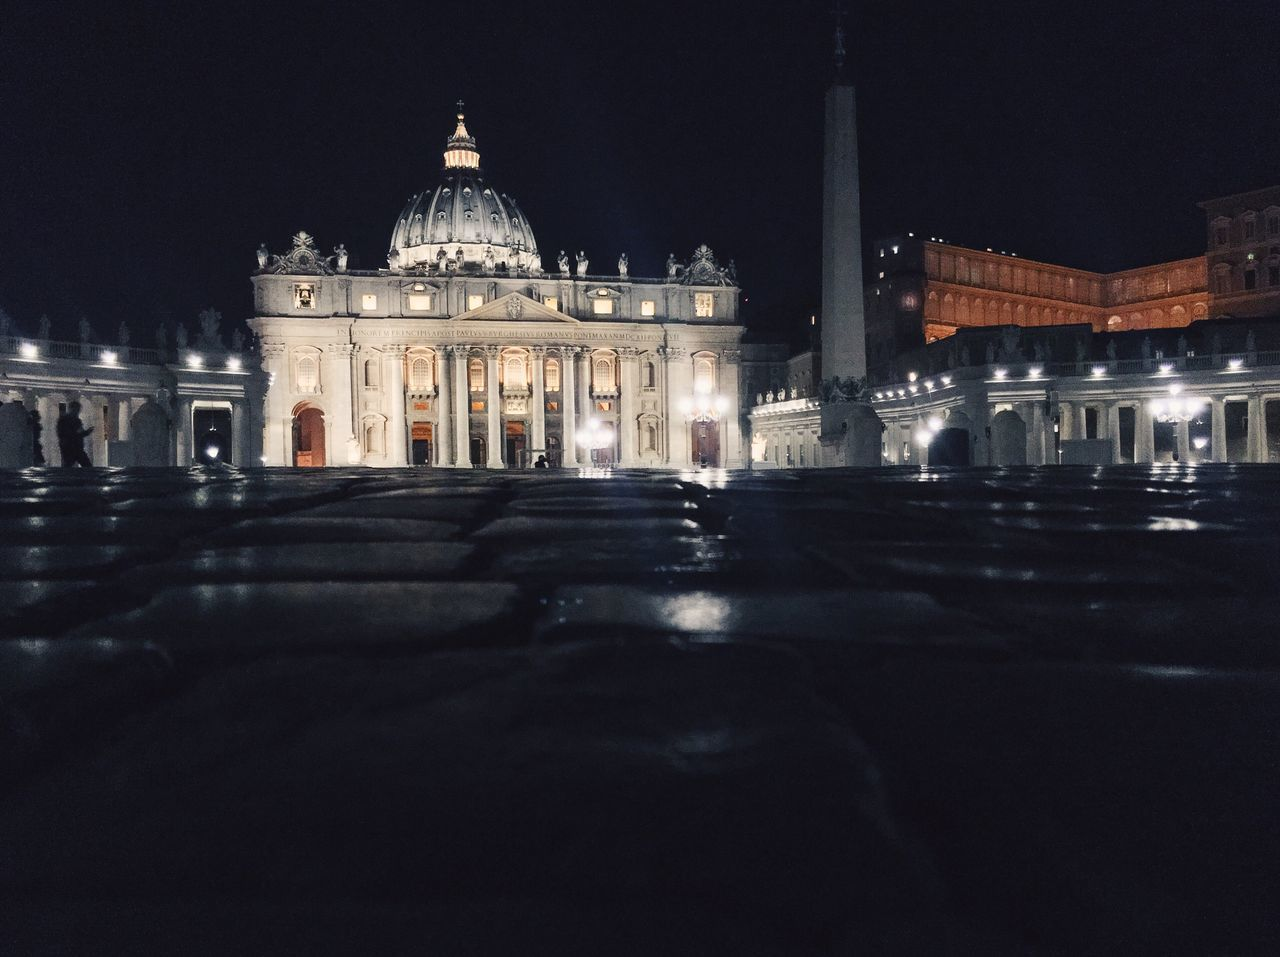 San Pietro In Vaticano Rome Travel Night Catholic Religion Church Architecture Built Structure Building Exterior Travel Destinations Government Tourism Getting Inspired San Pietro Illuminated City Life Basilica Vatican